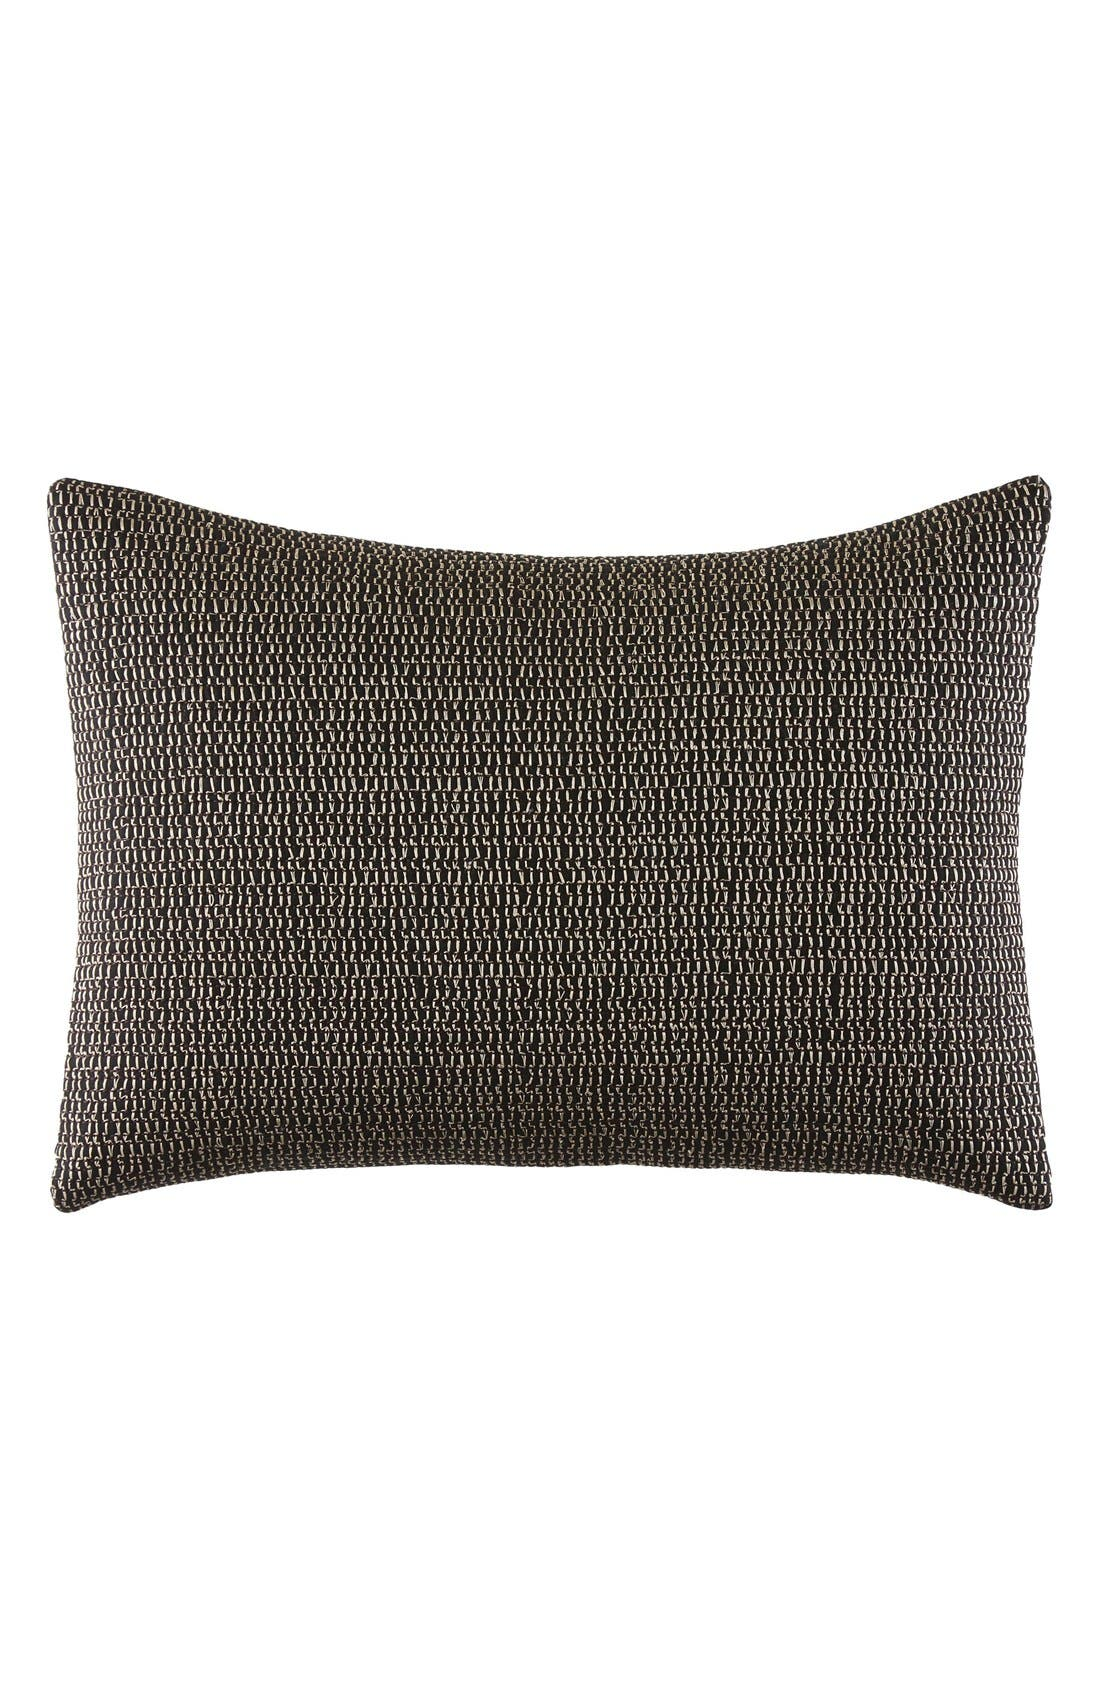 Alternate Image 1 Selected - Tommy Bahama Jungle Drive Pillow